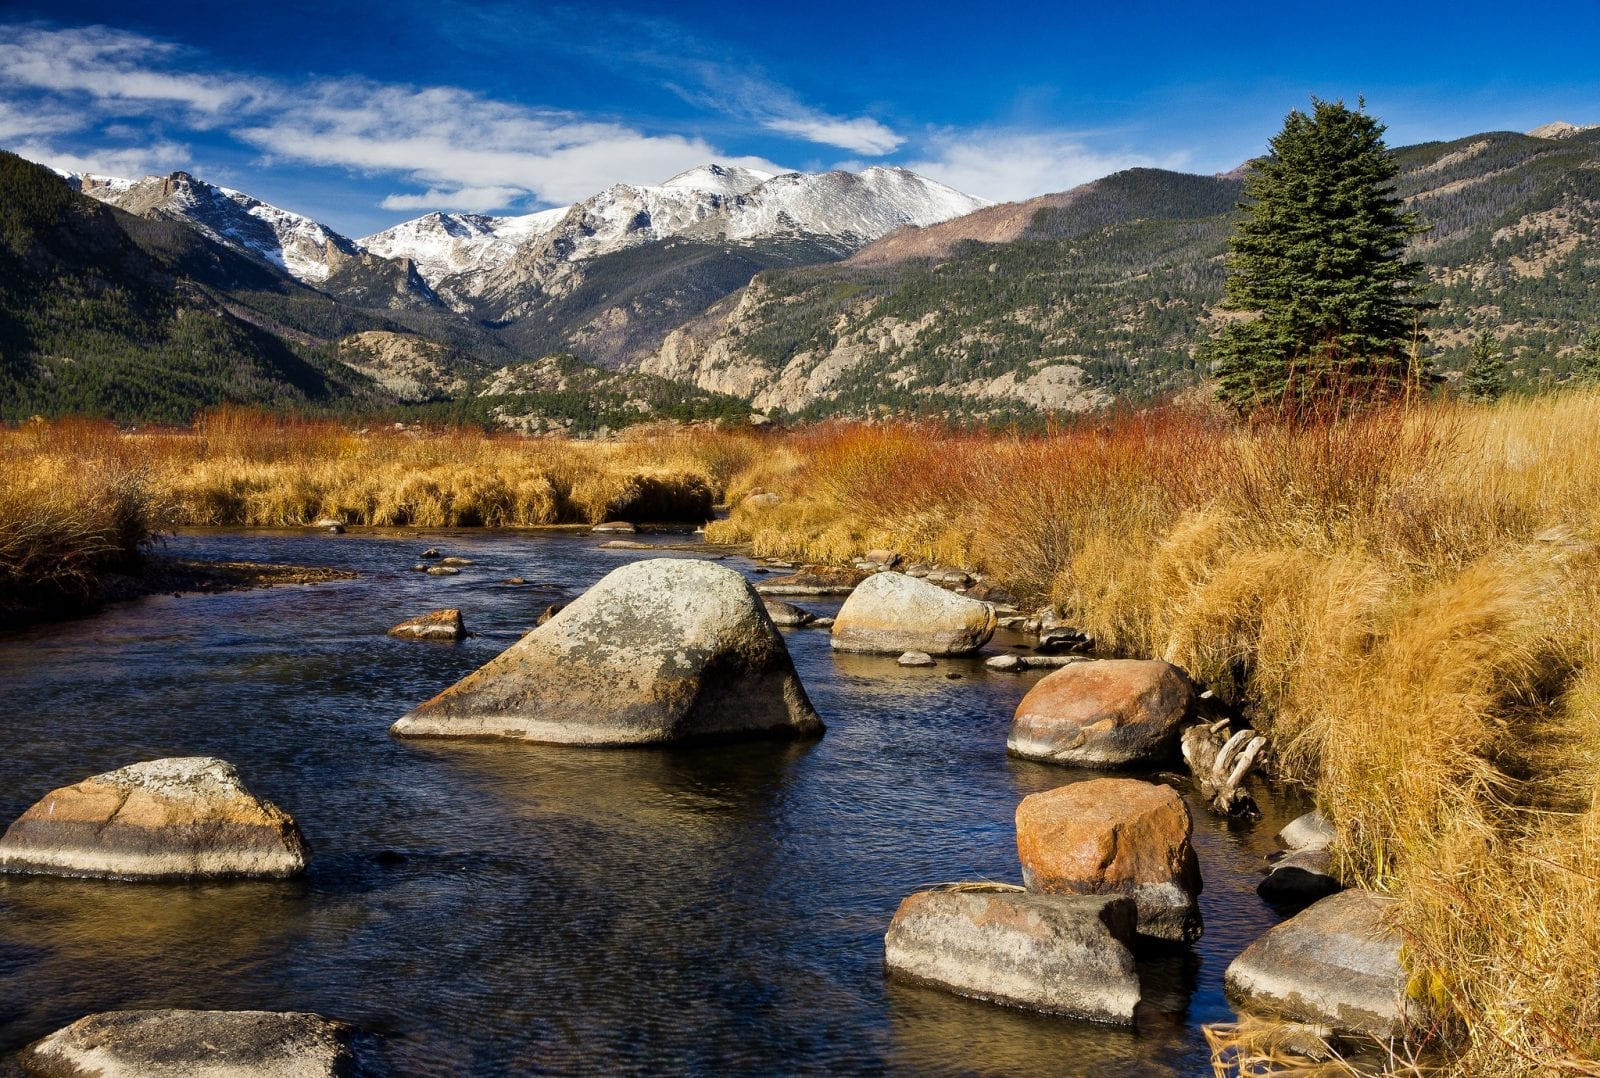 Image of the Big Thompson River with mountains in the background